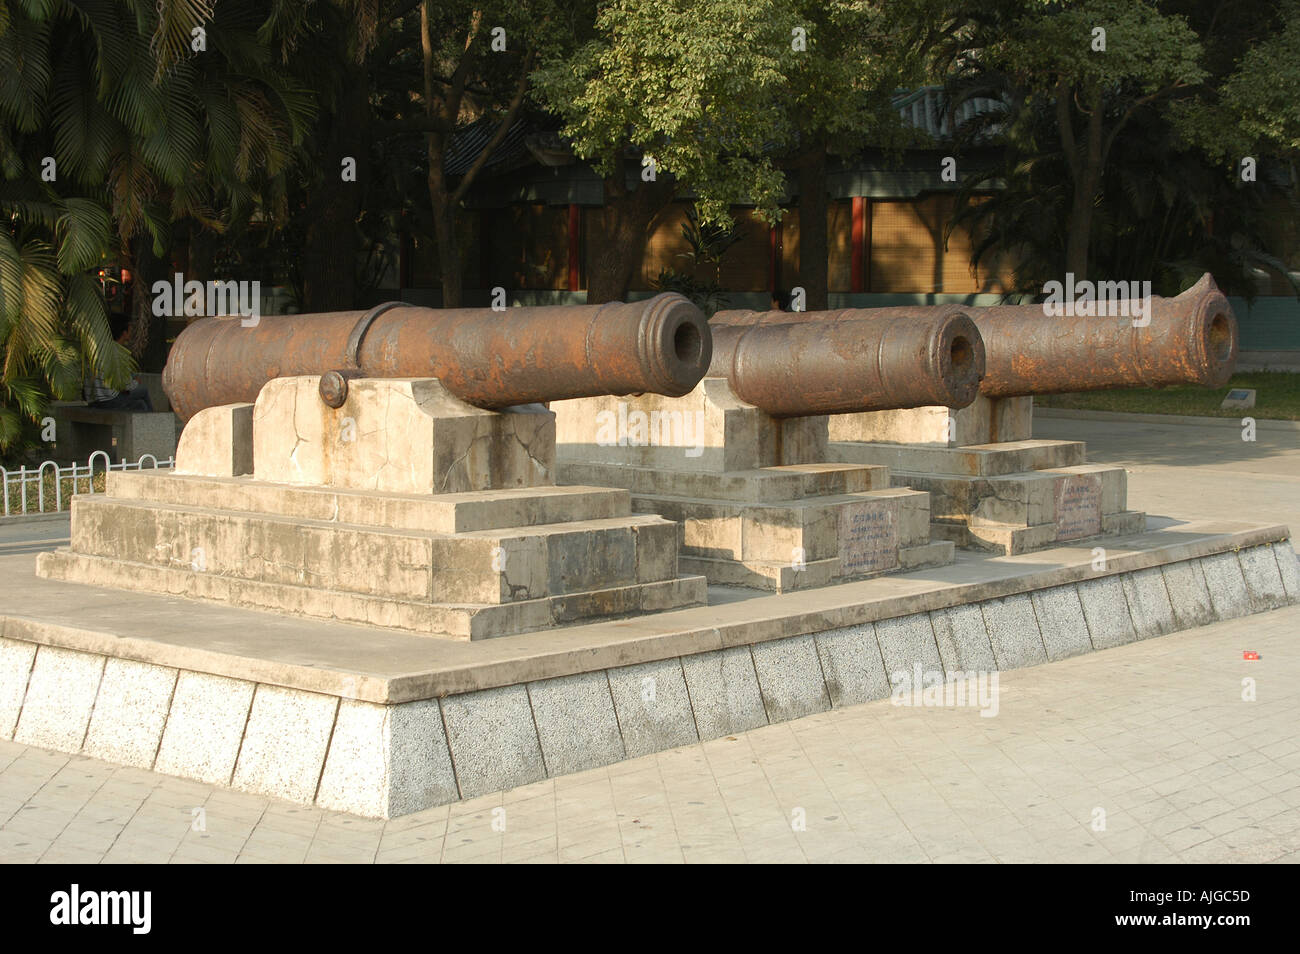 cannons at opium museum china - Stock Image